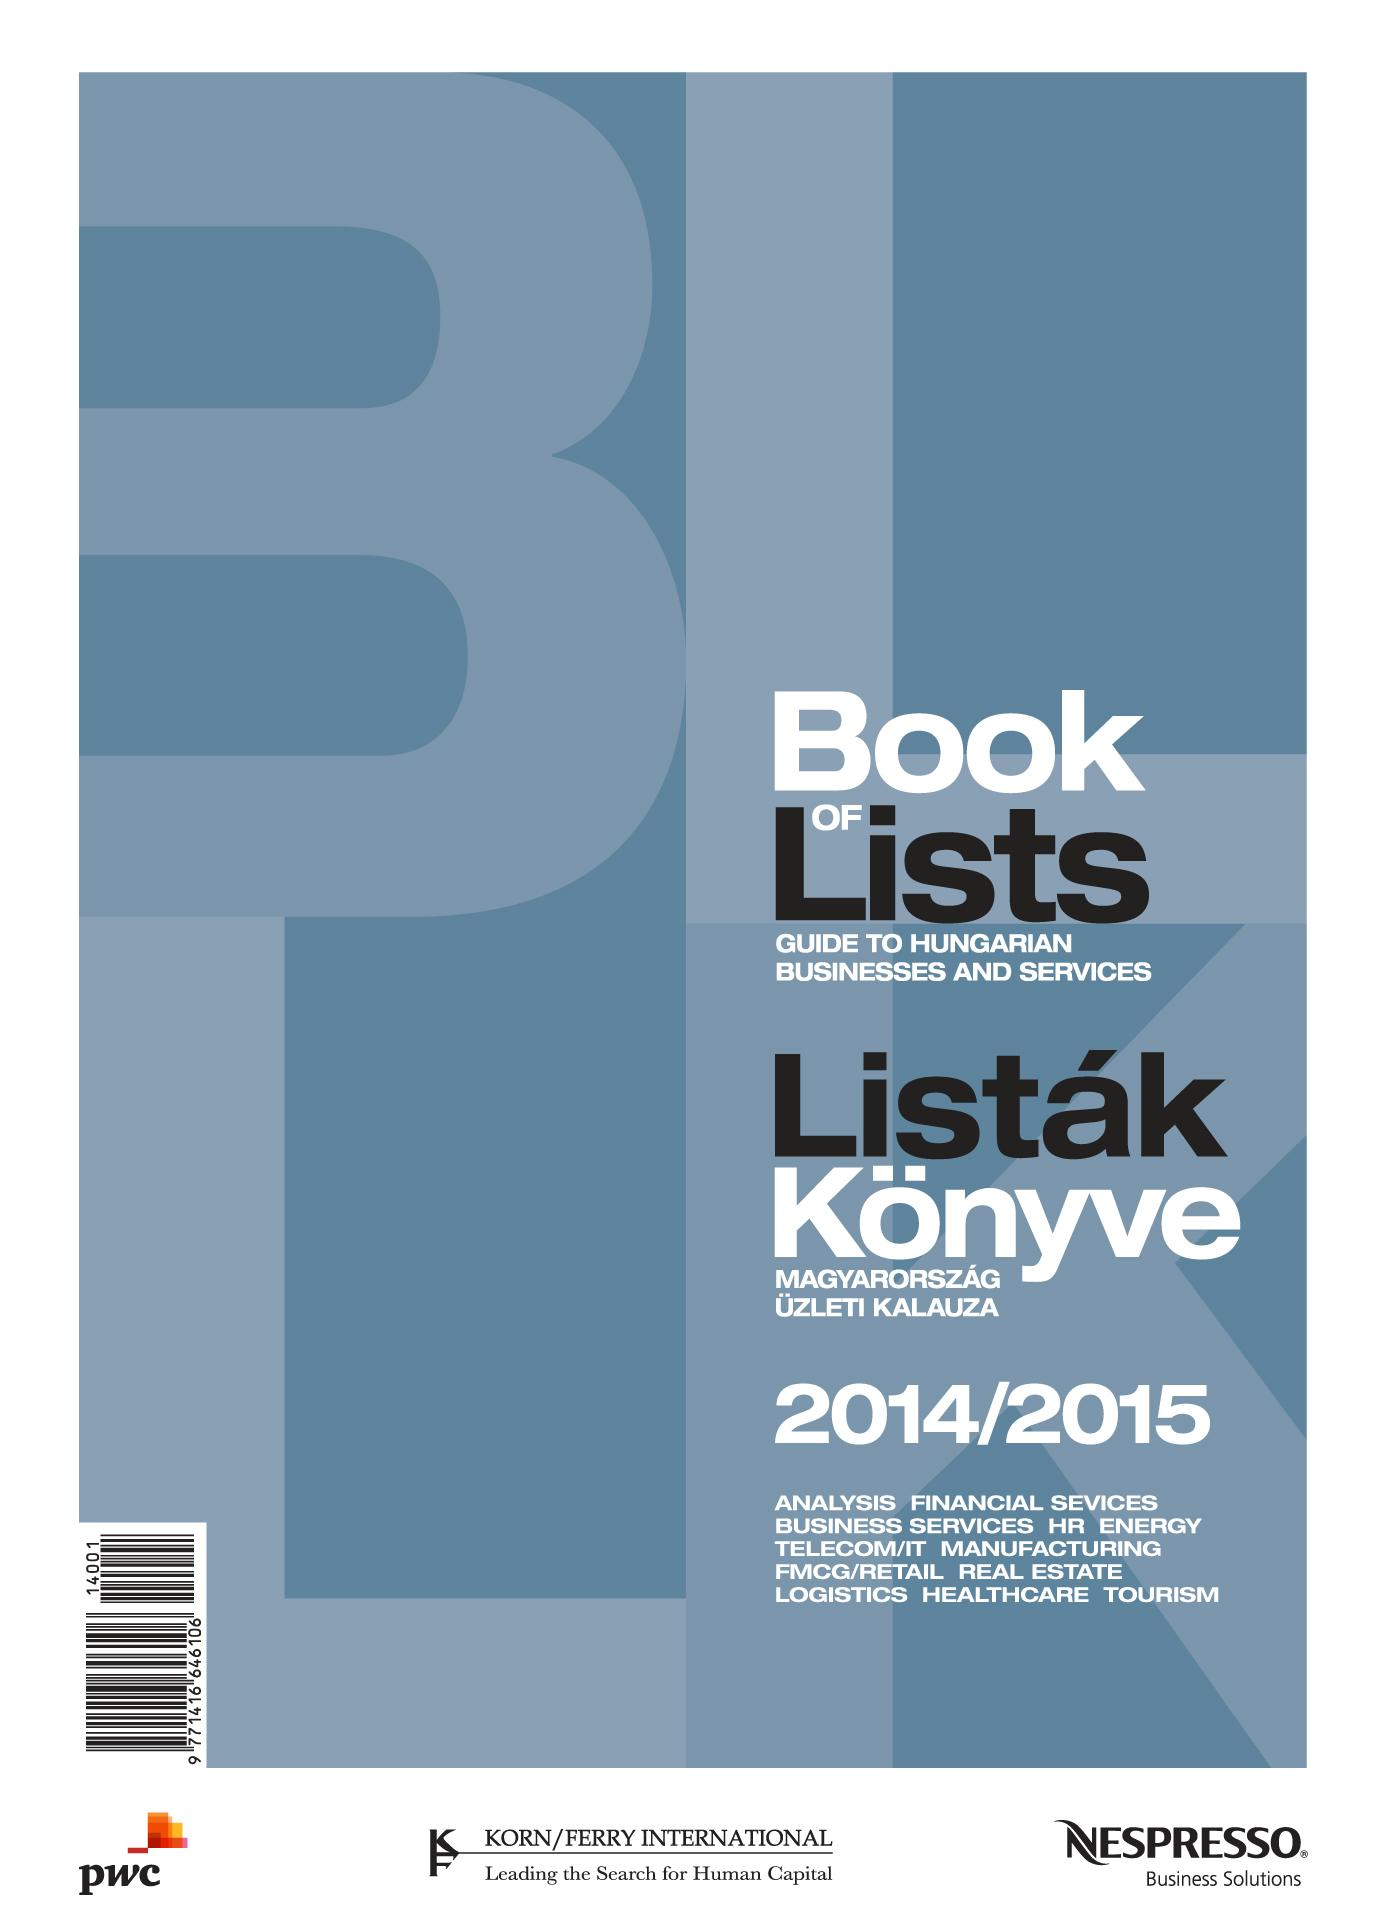 BOOK OF LISTS - LISTÁK KÖNYVE 2014/2015